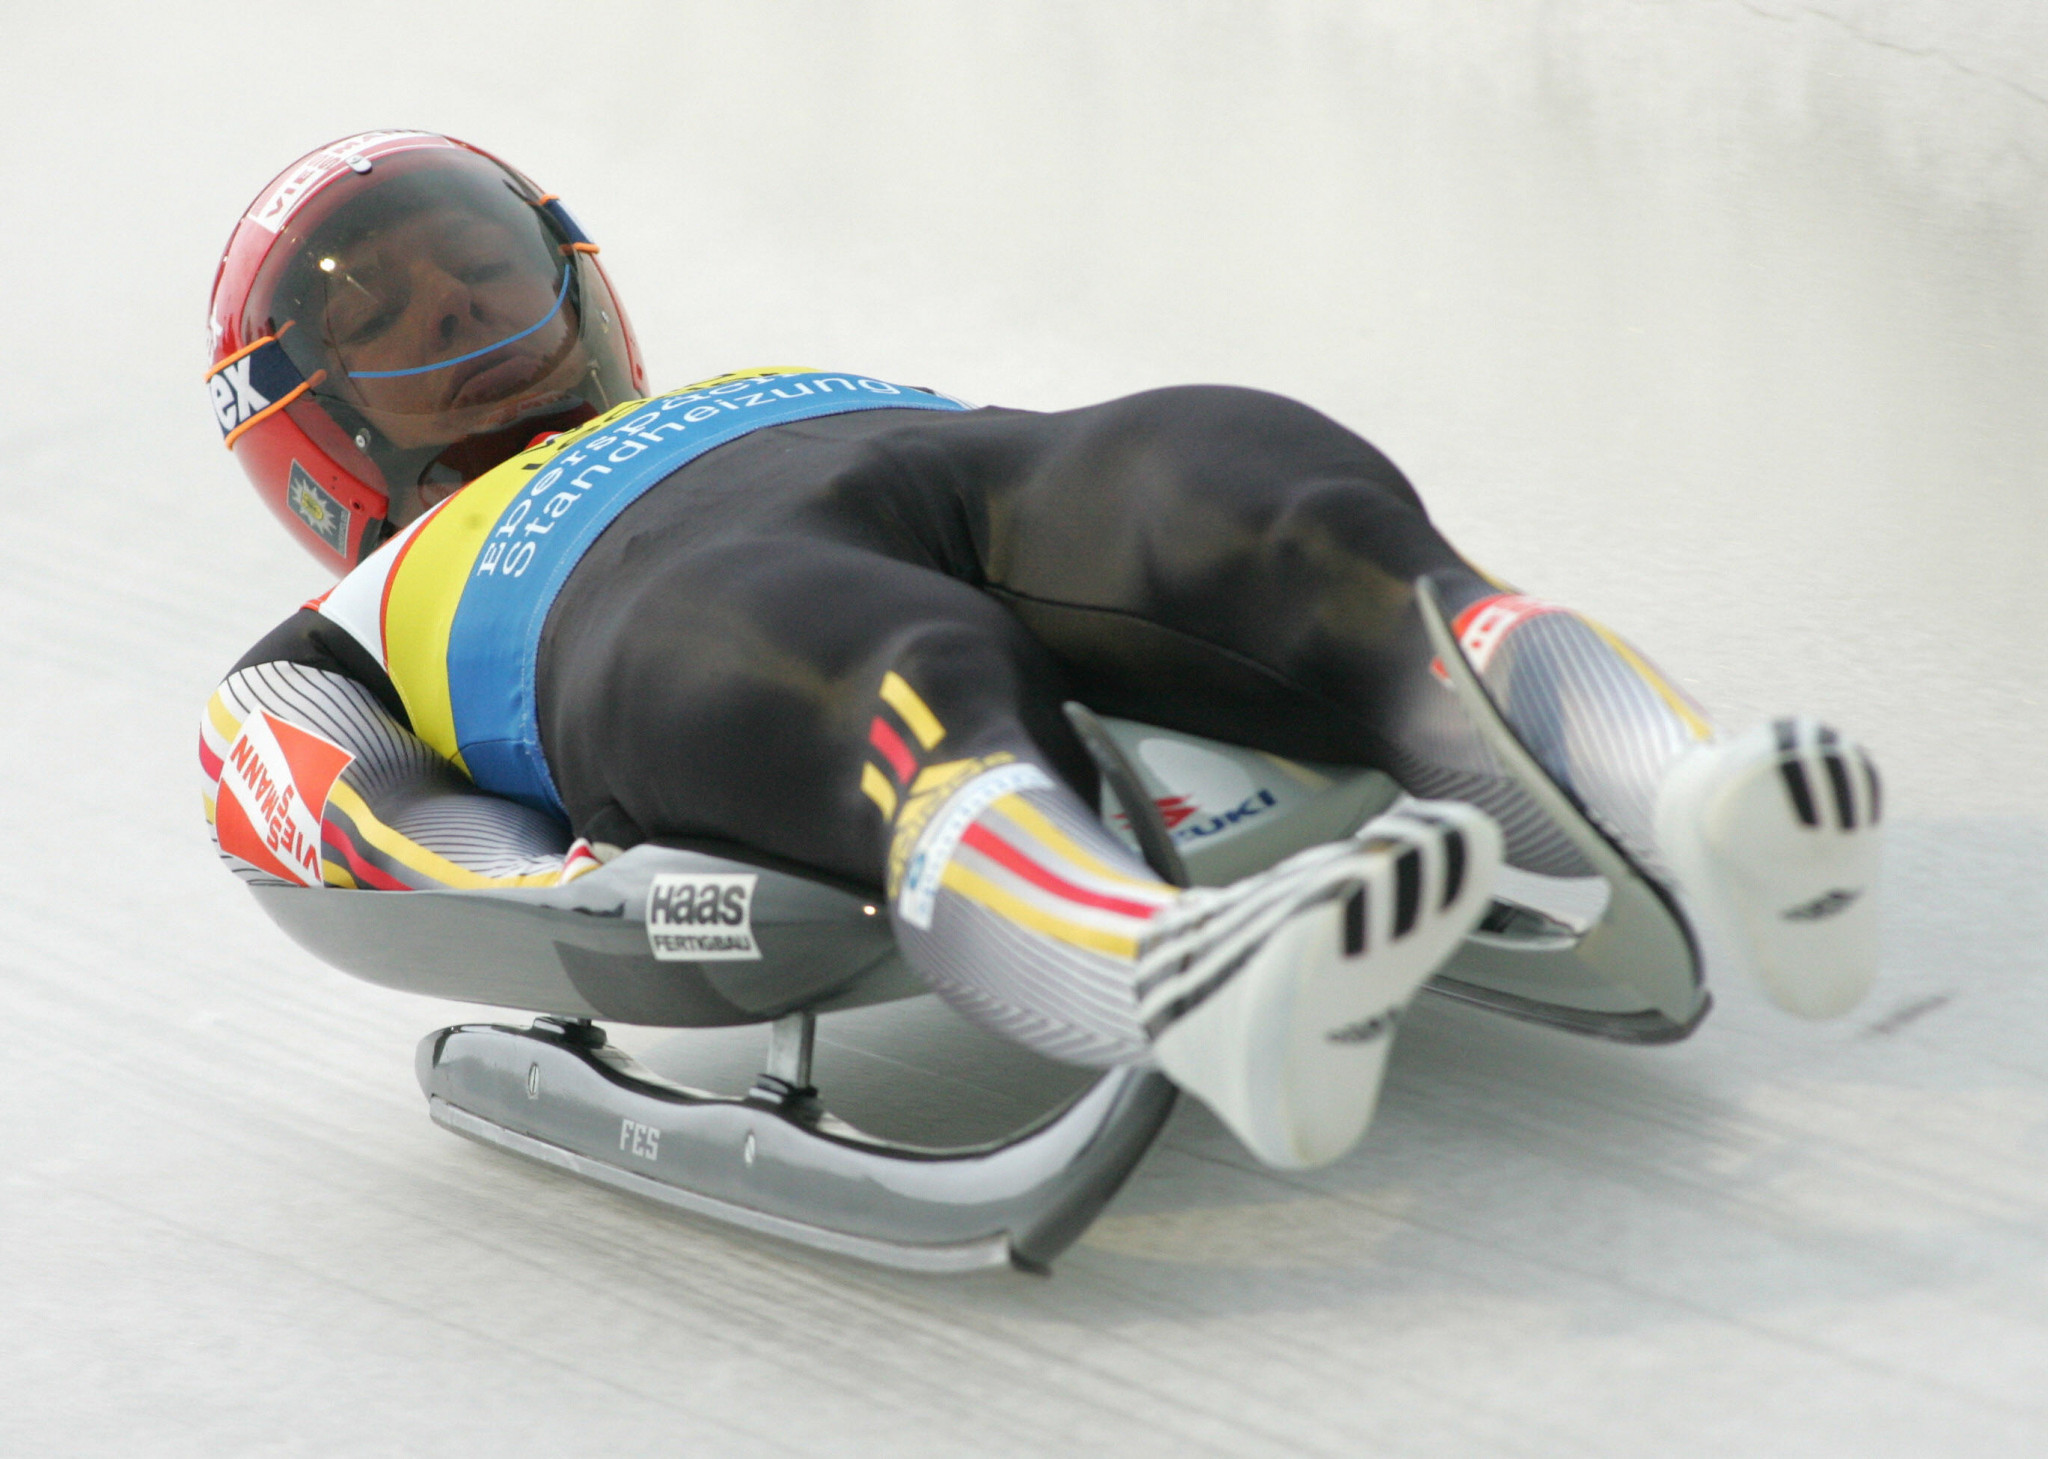 Winterberg to host Junior World Luge Championships in 2022 as World Cup circuit announced